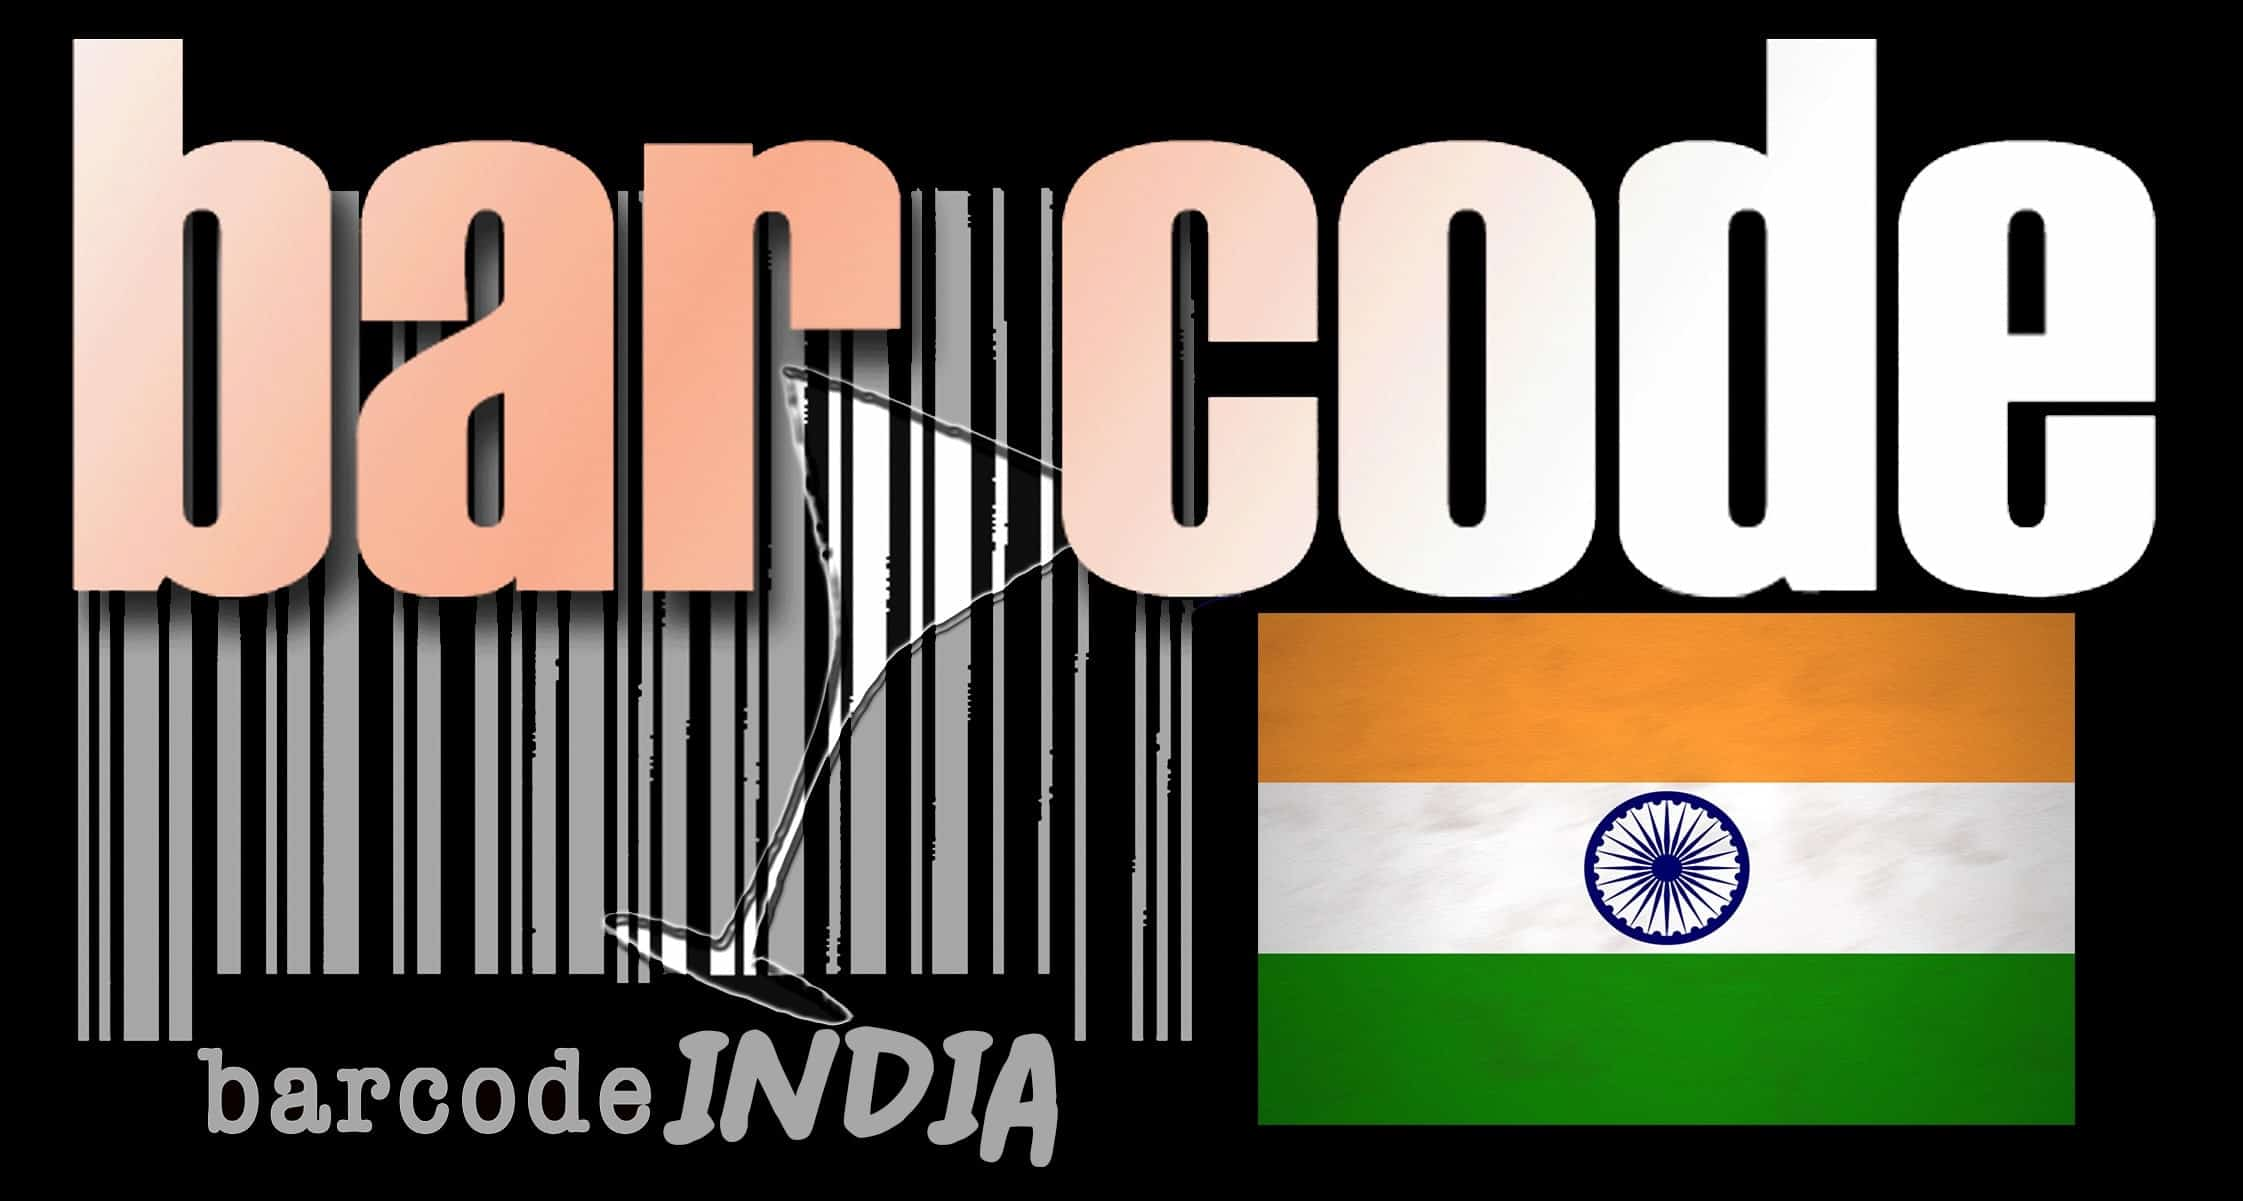 BarcodeUSA (India) Logo